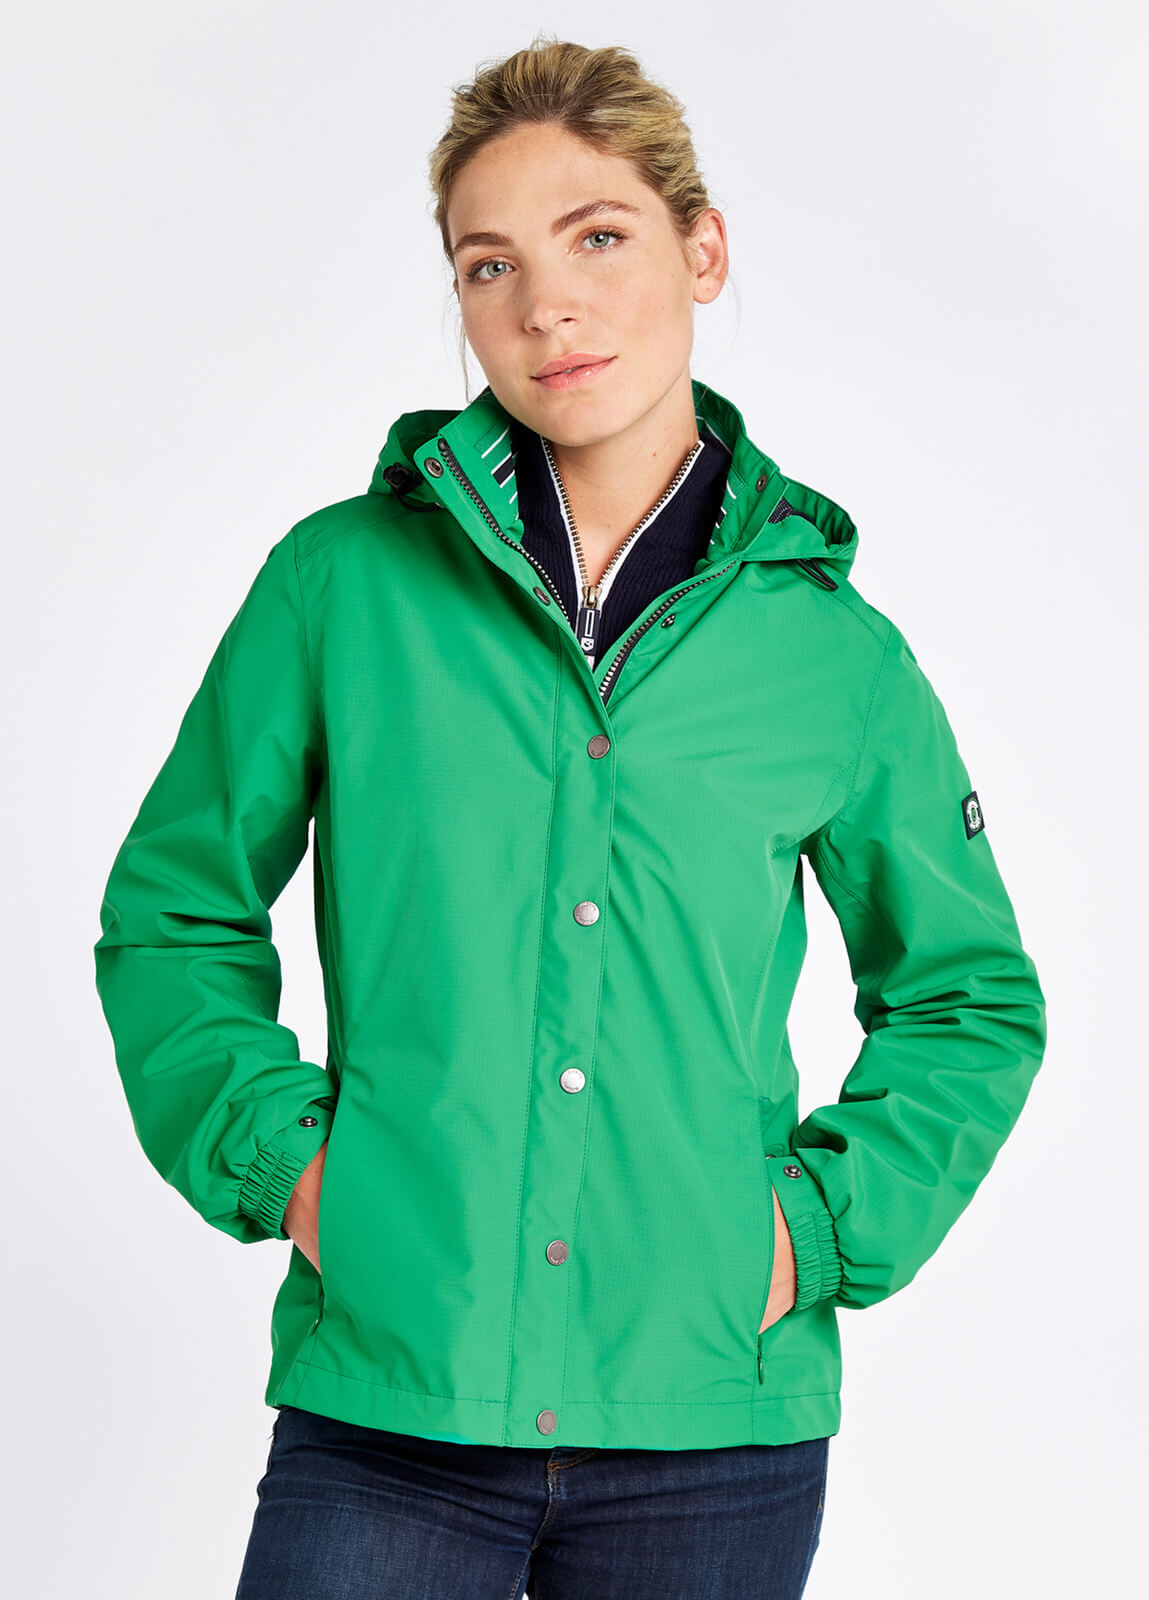 Baltimore_Jacket_Kelly_Green_on_model